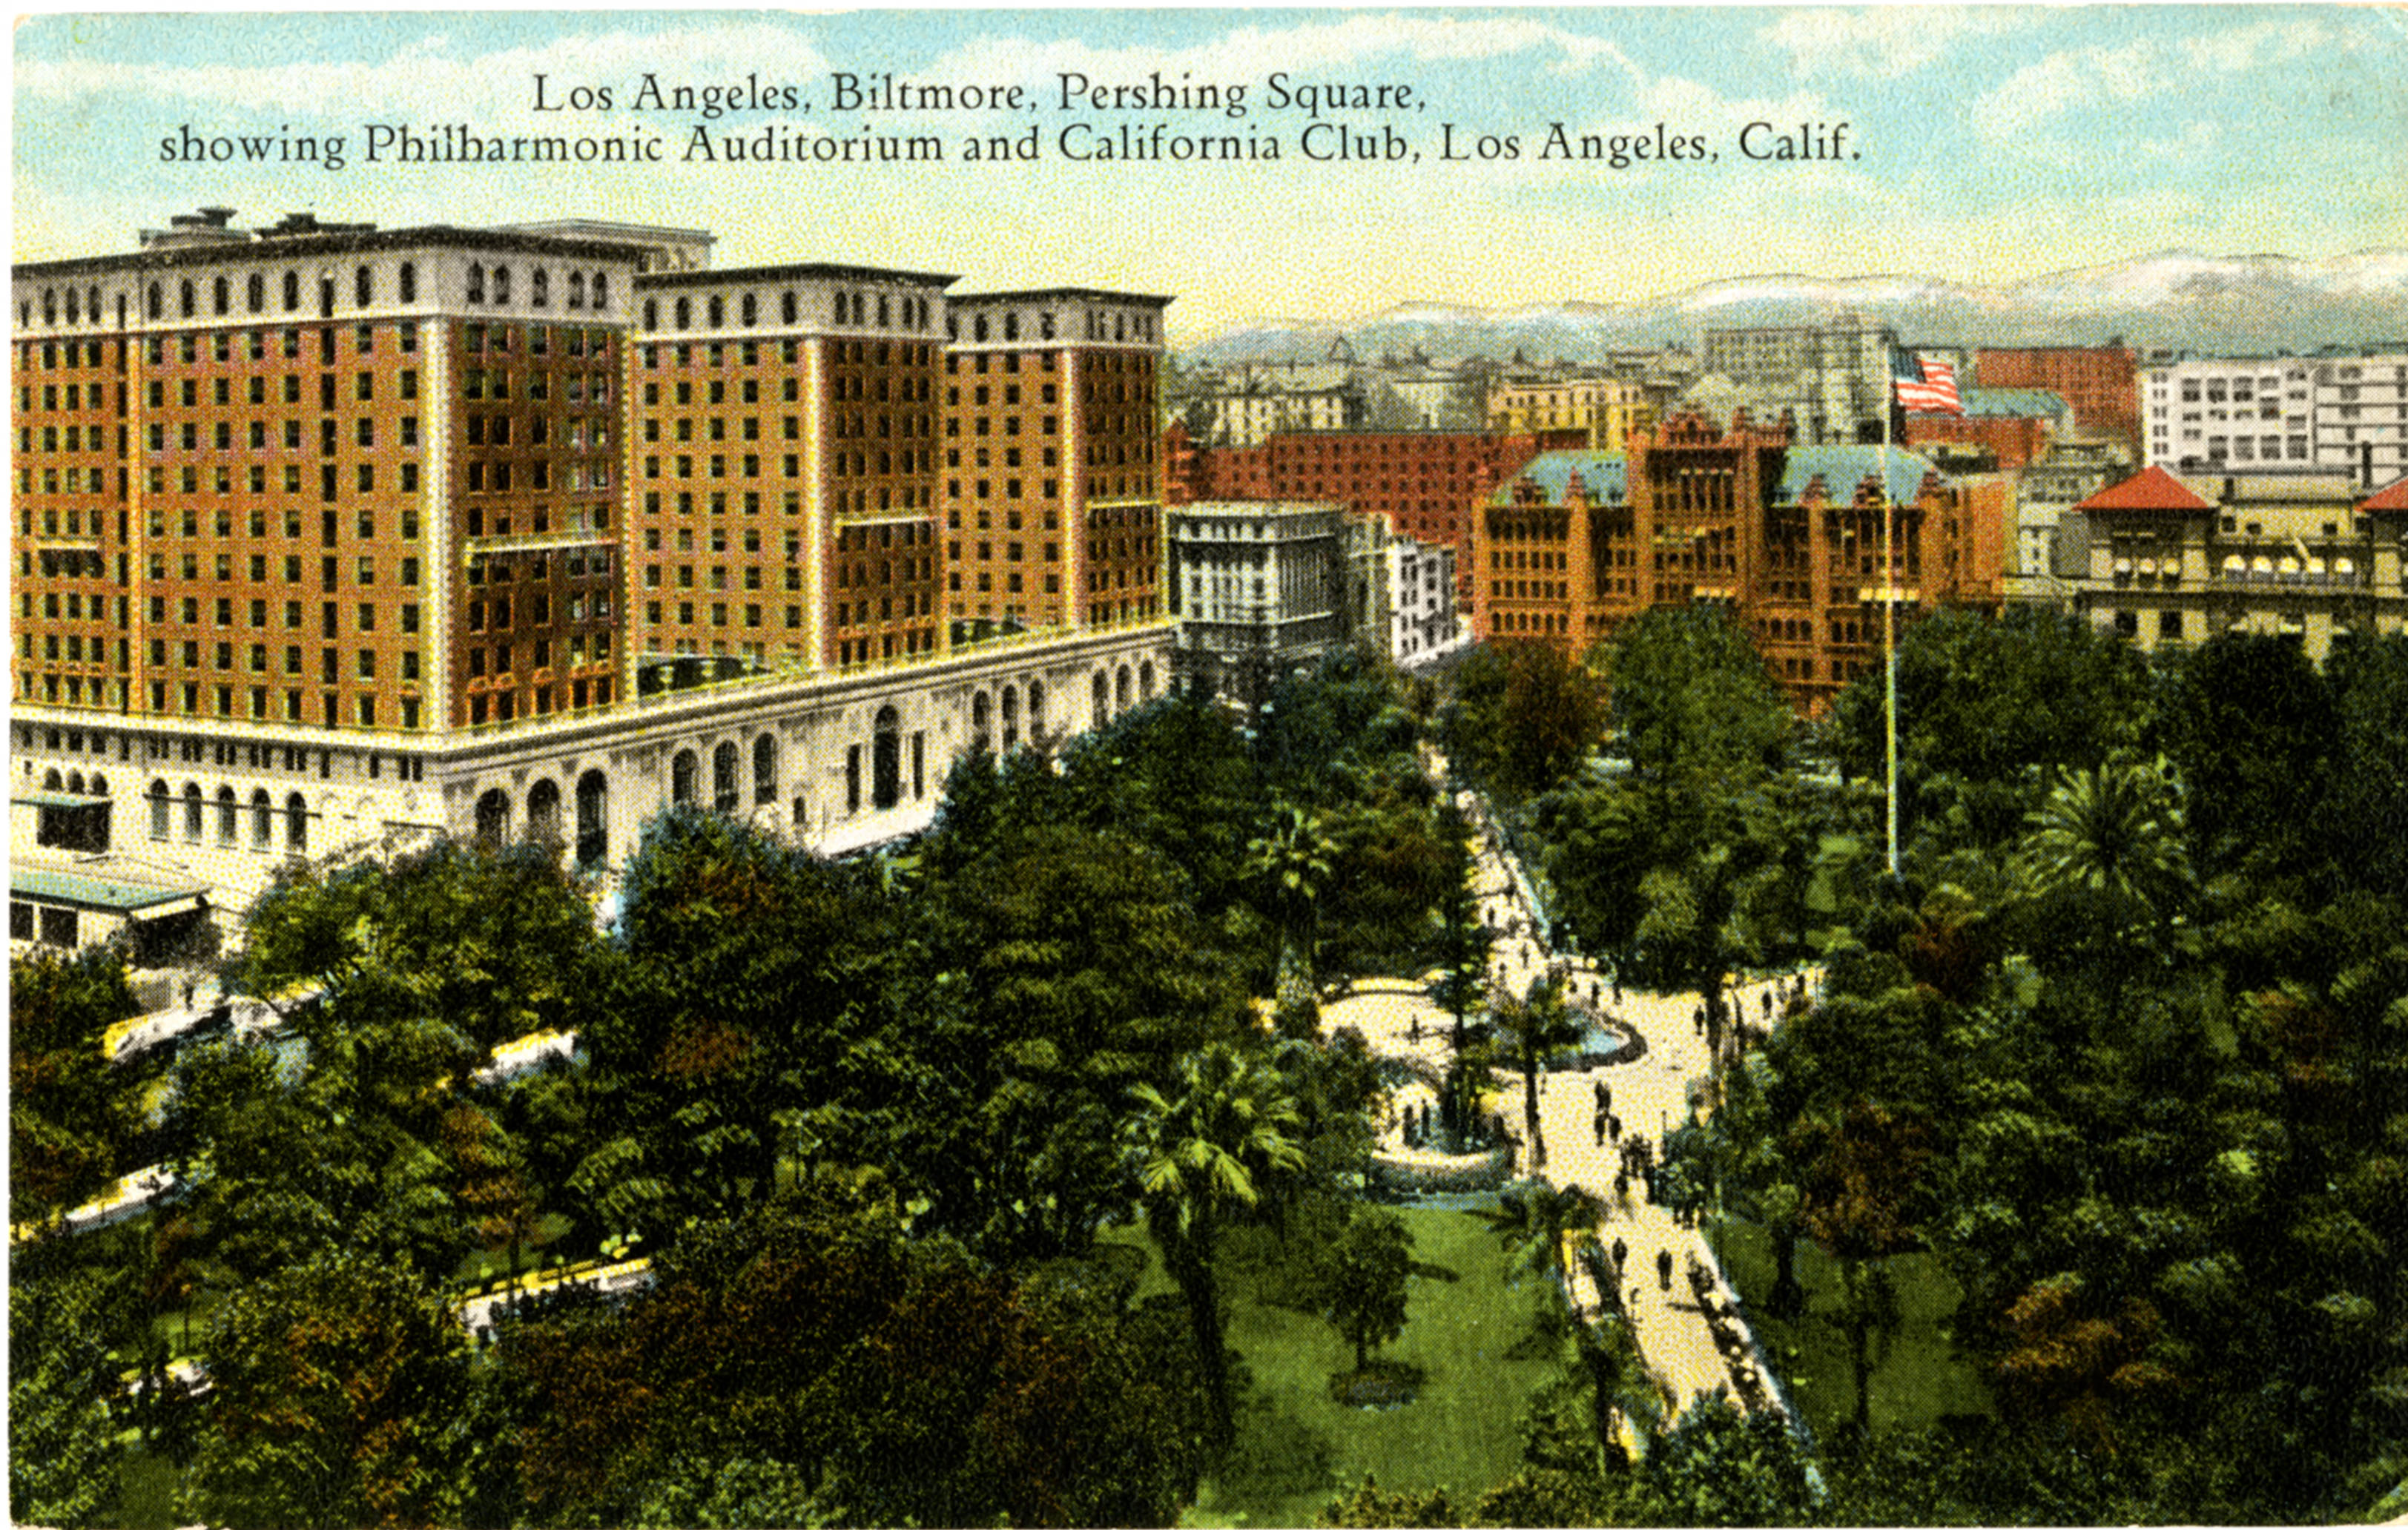 Los Angeles, Biltmore, Pershing Square showing Philharmonic Auditorium and California Club, Los Angeles, Calif.